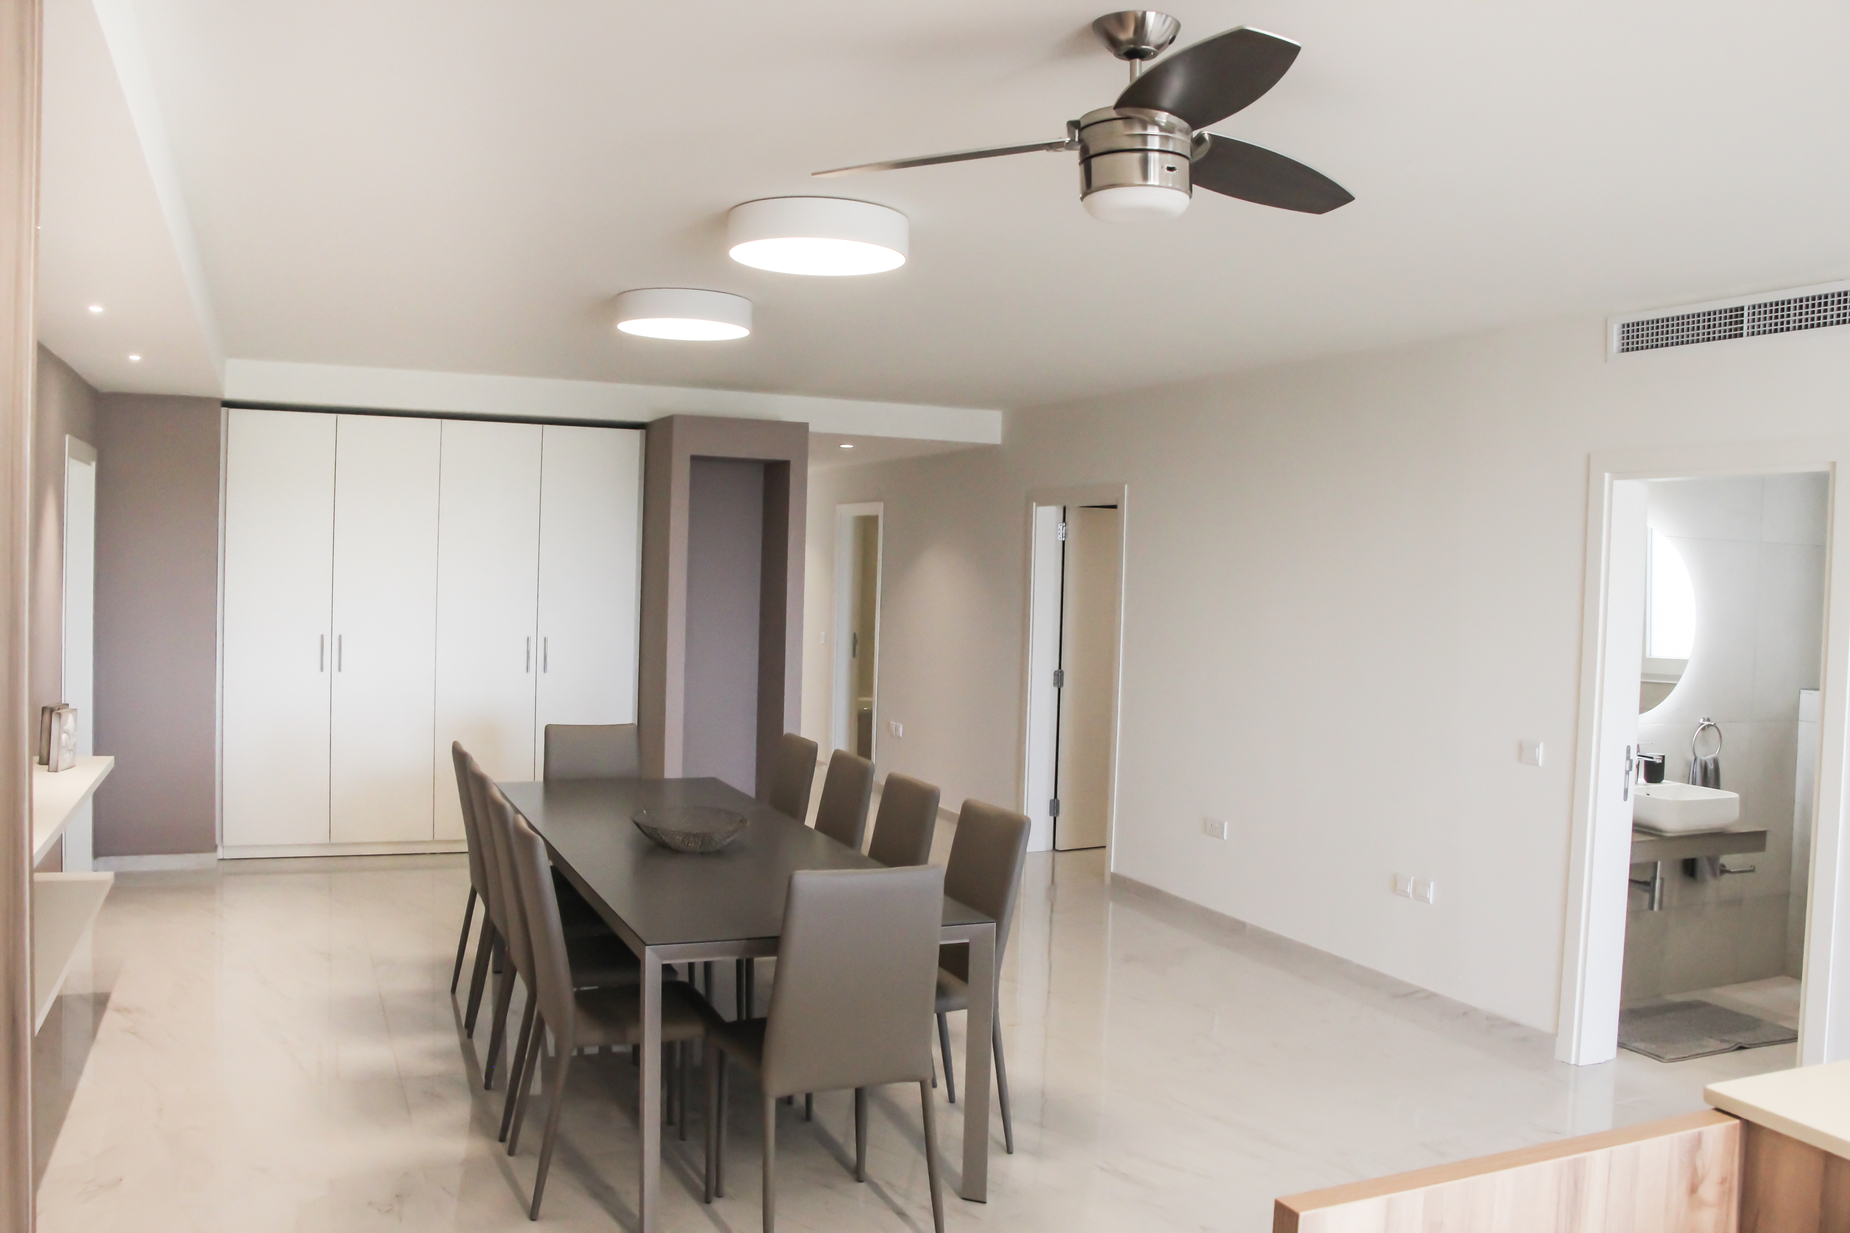 3 bed Apartment For Rent in Mosta, Mosta - thumb 10